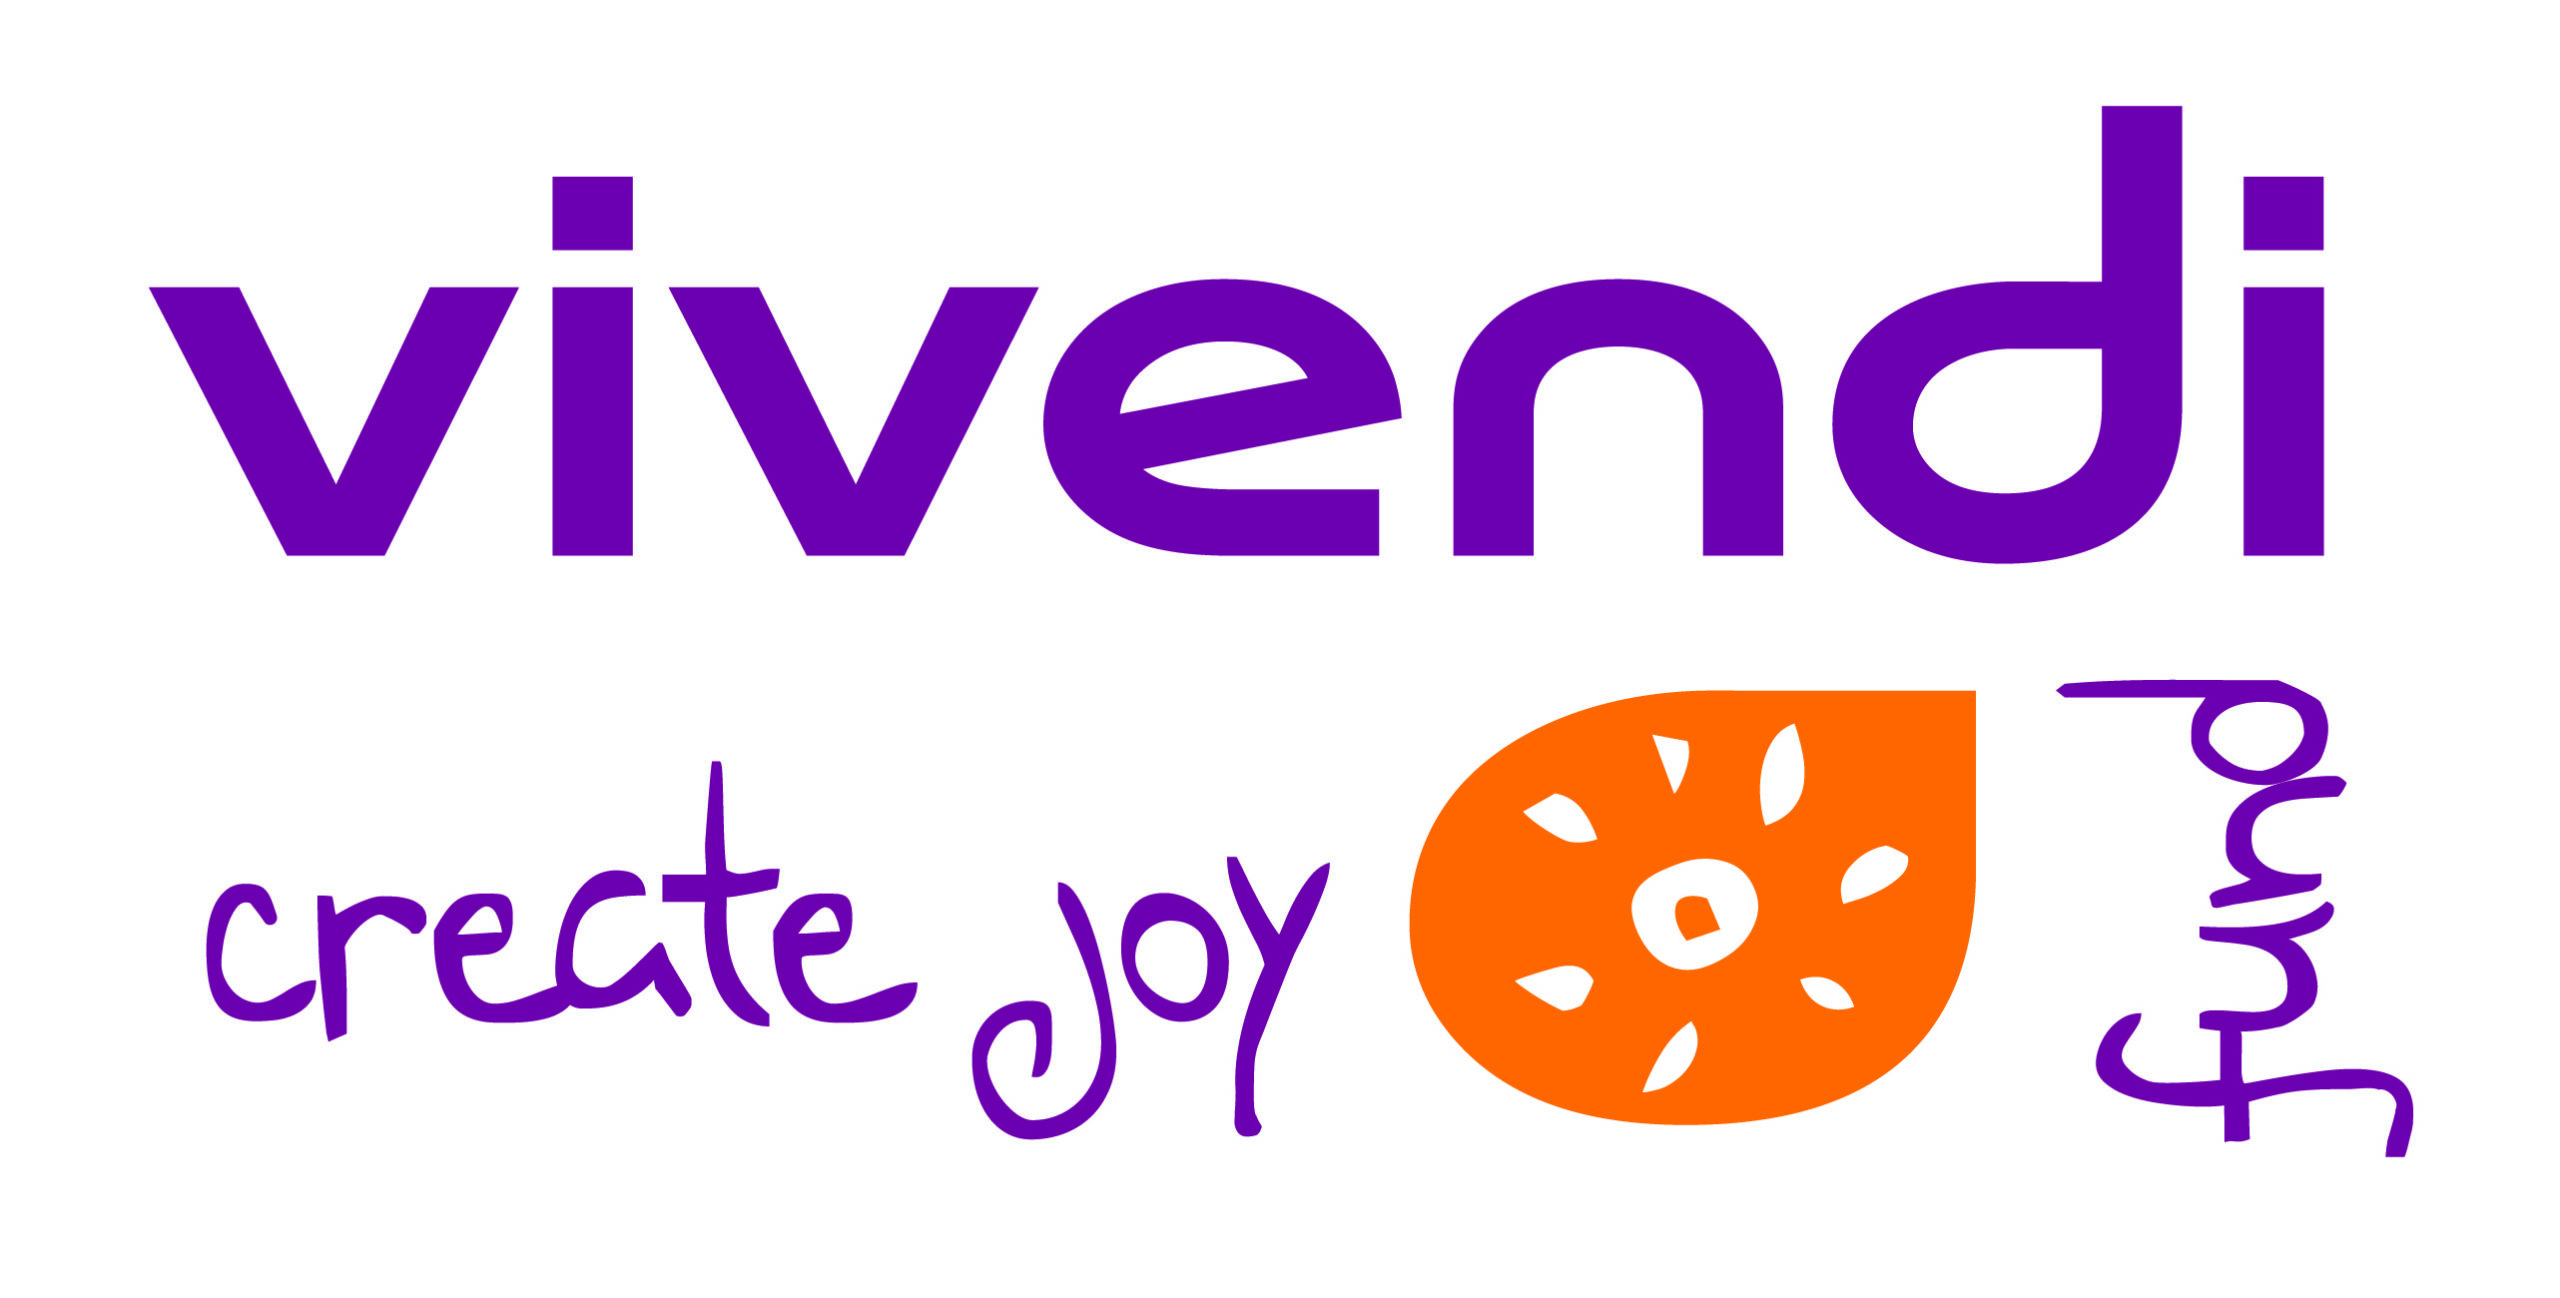 Vivendi create Joy Fund for young people